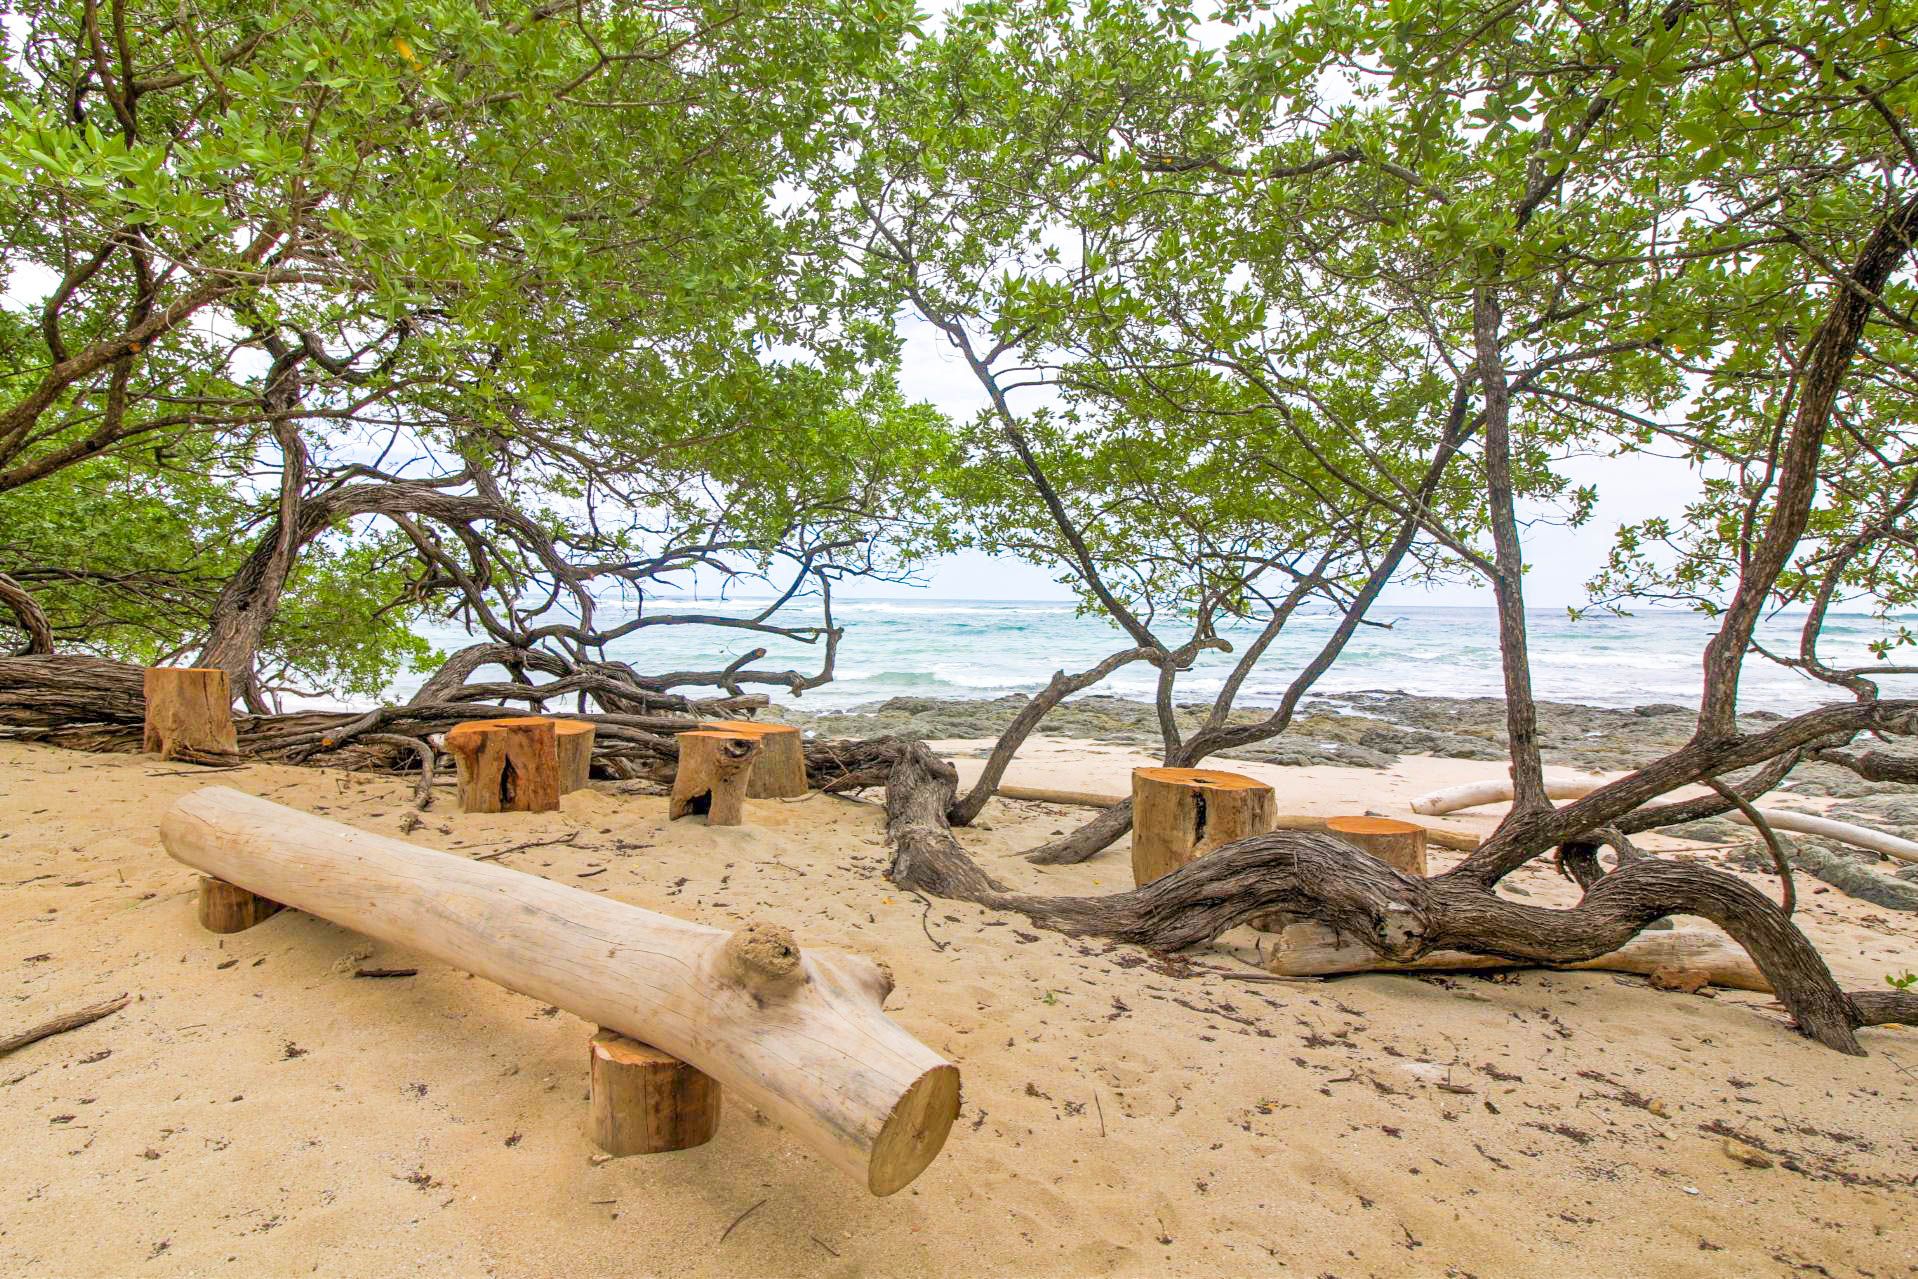 Natural furniture created from a log that washed up on the beach